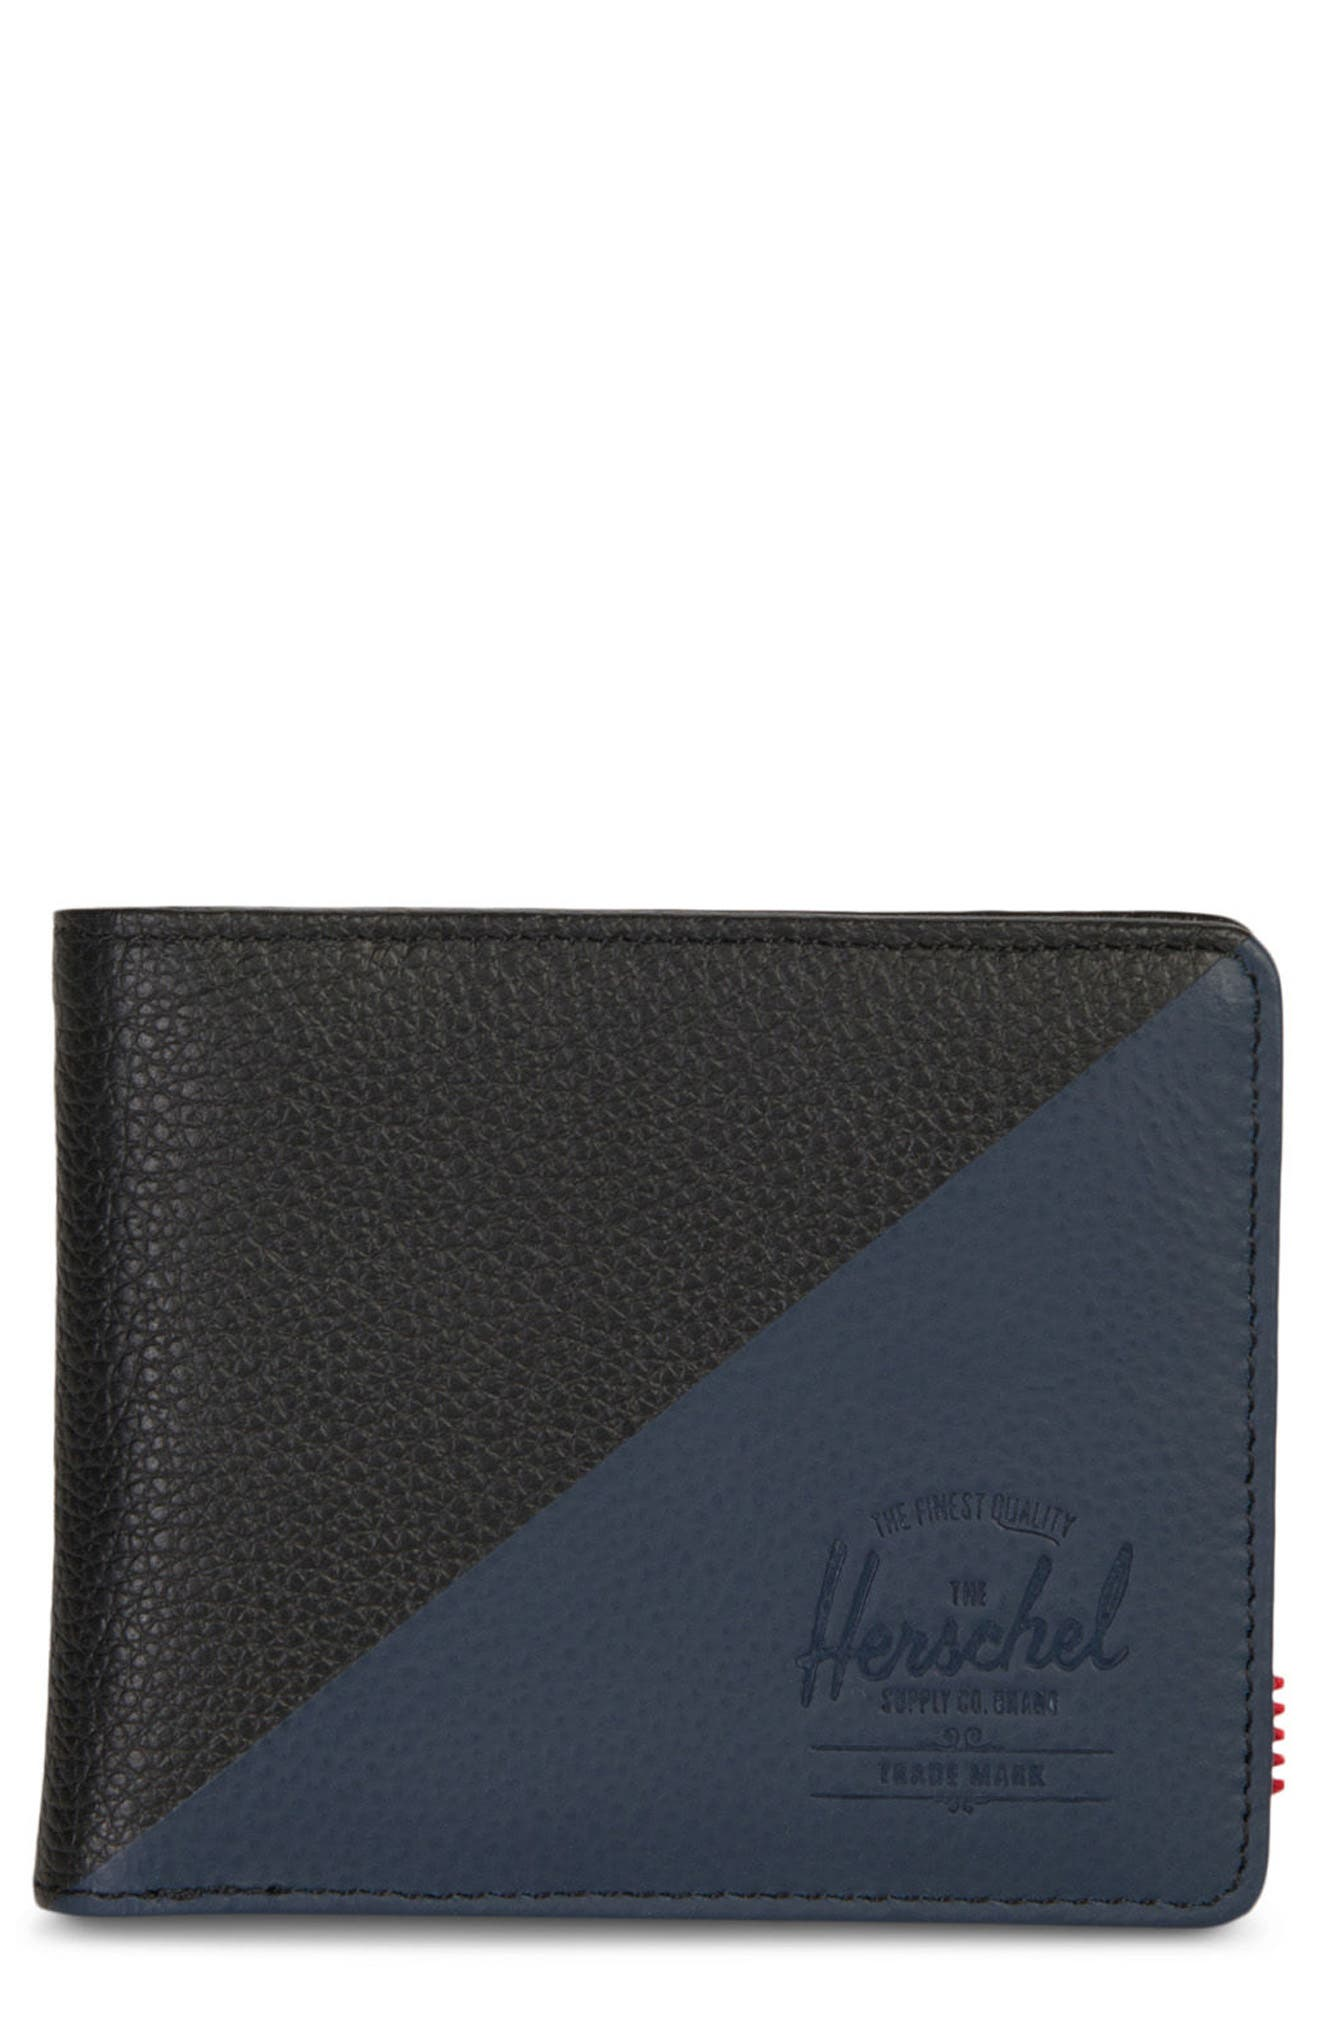 Hank Leather Wallet,                             Main thumbnail 1, color,                             001